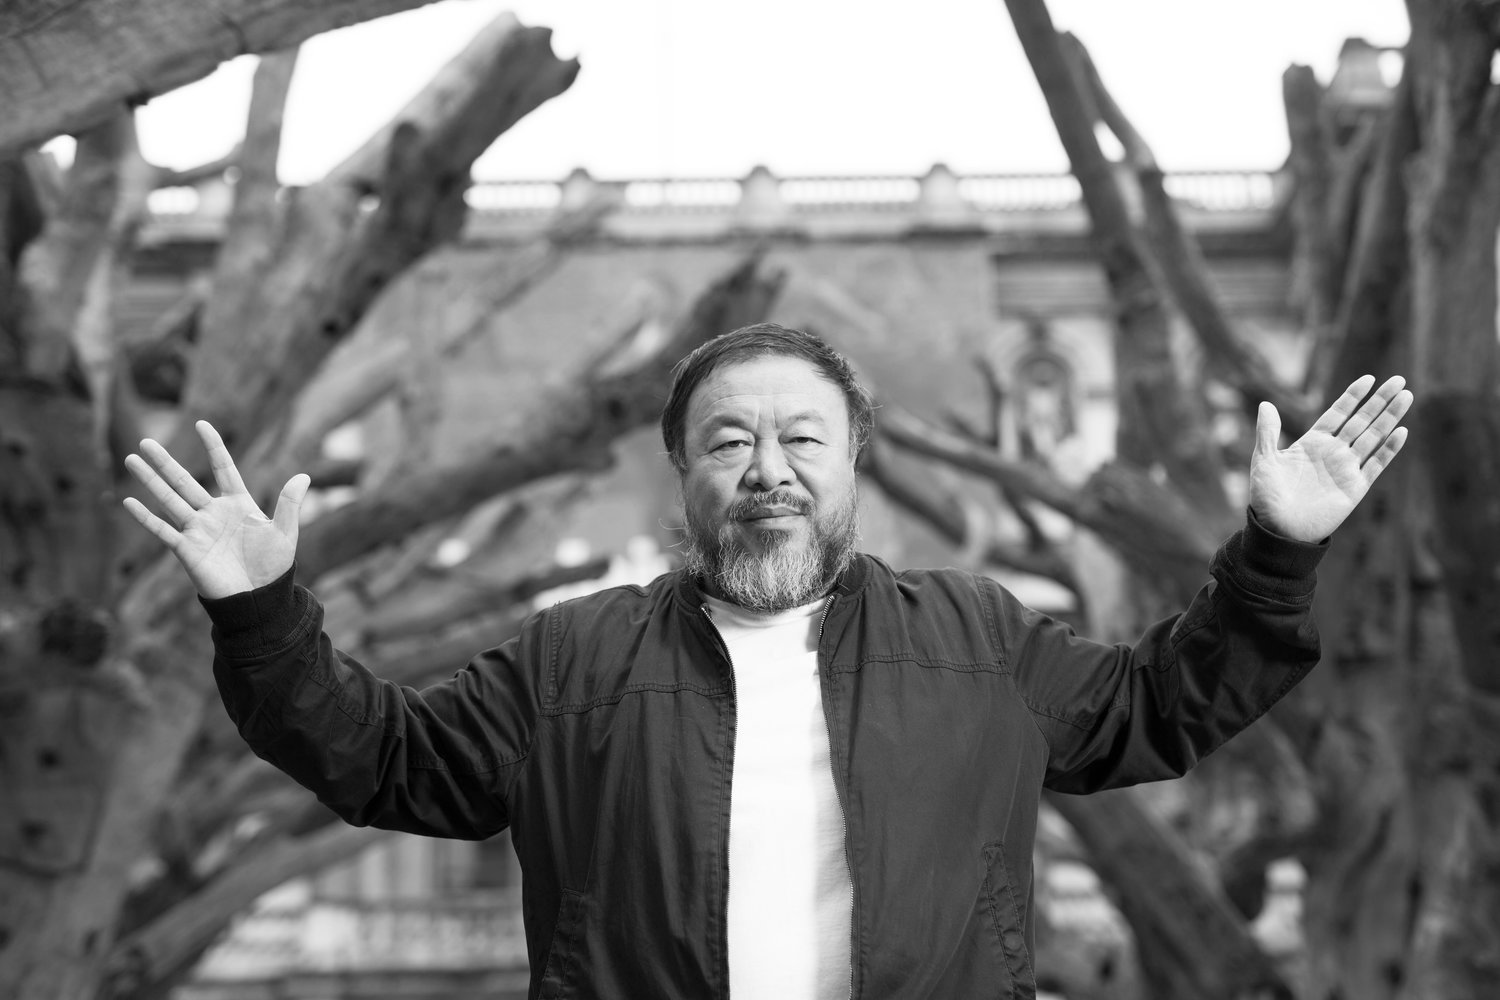 Ai Weiwei presenting his installation  Tree  in the courtyard at the Royal Academy of Arts, 2015. Photo by David Parry.